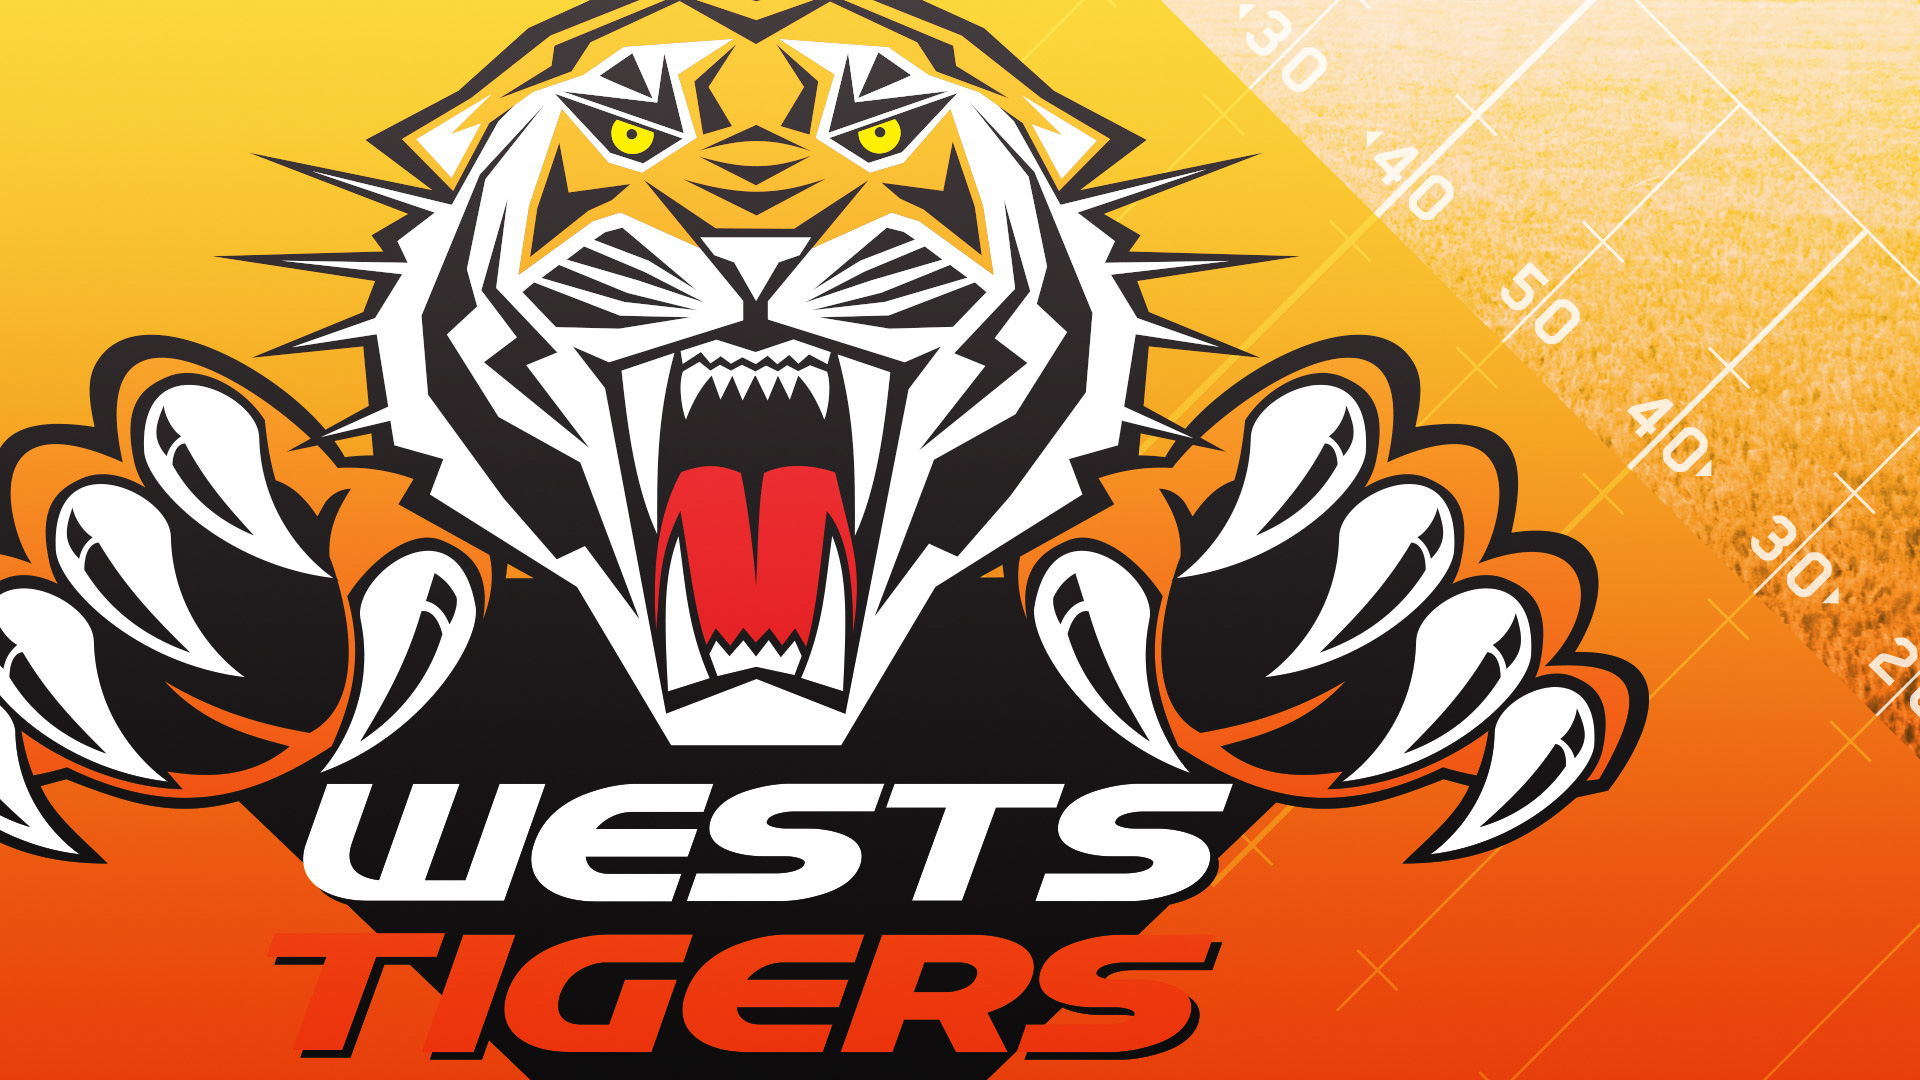 _VIRTUAL_WESTS_TIGERS_right.jpg